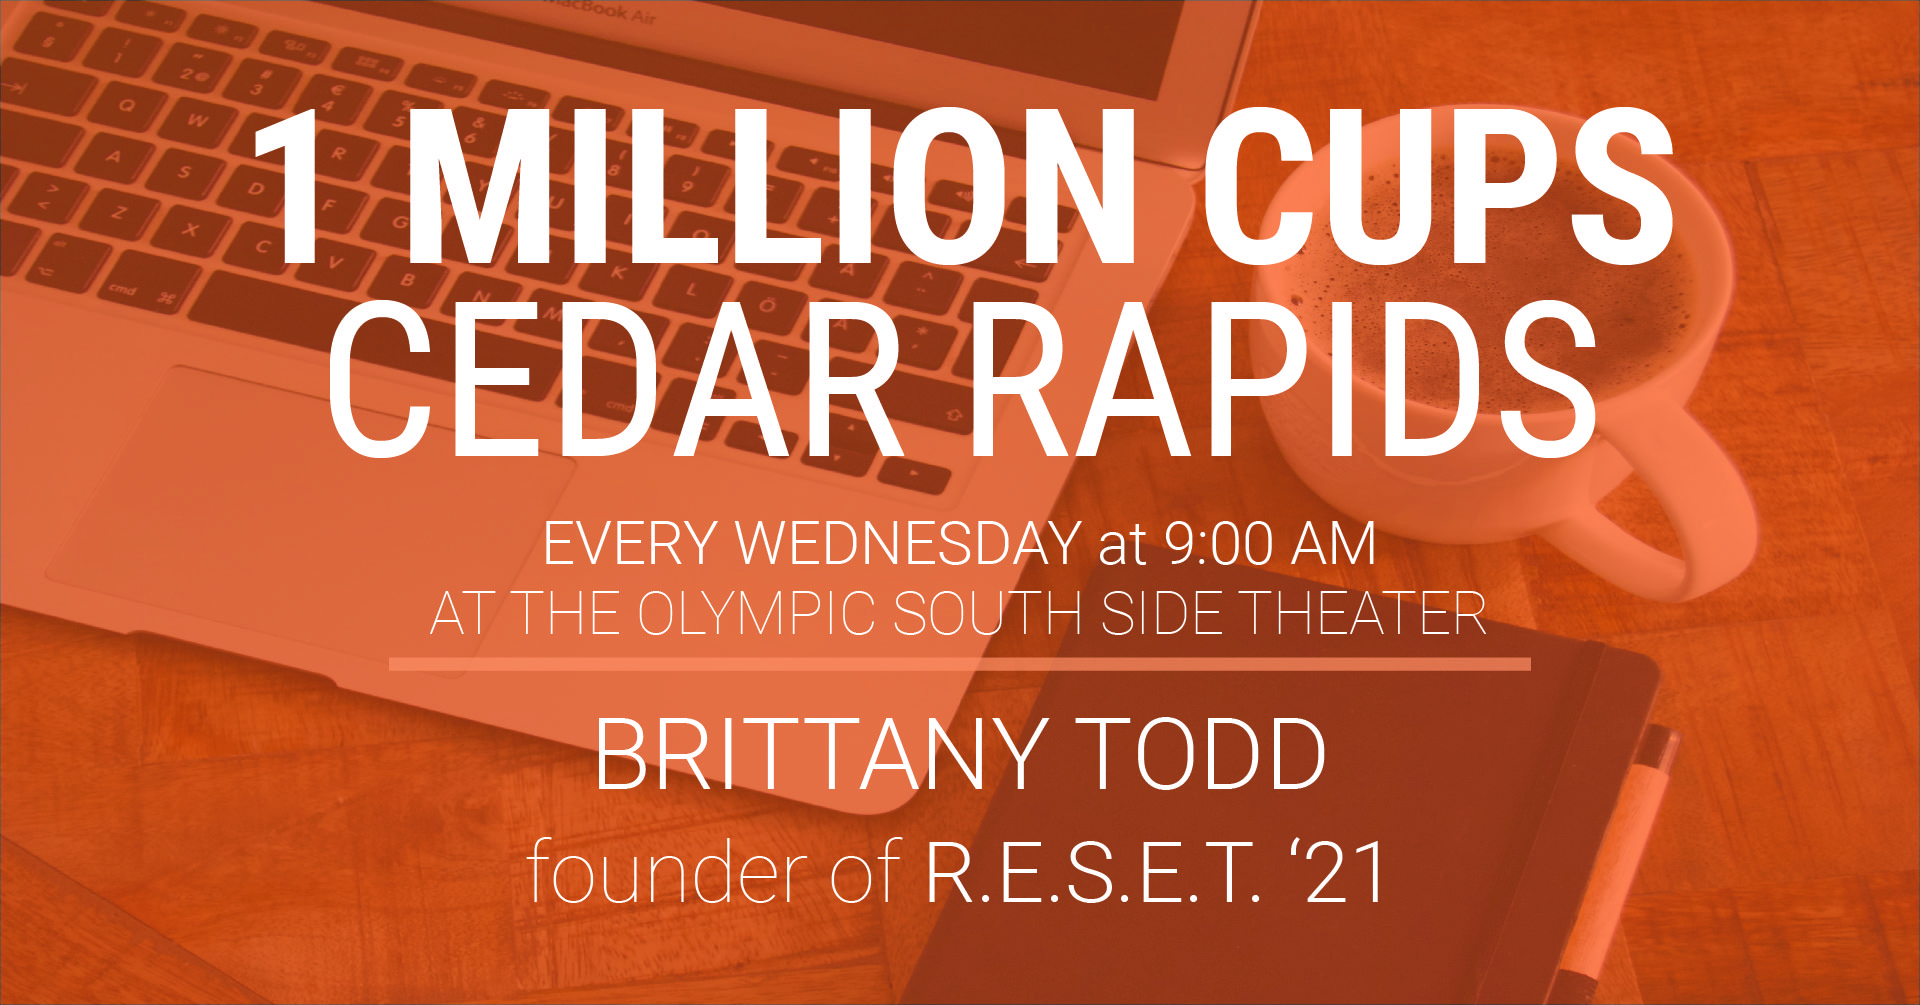 1 Million Cups: Cedar Rapids on October 6, 2021 with Brittany Todd, founder of R.E.S.E.T. '21